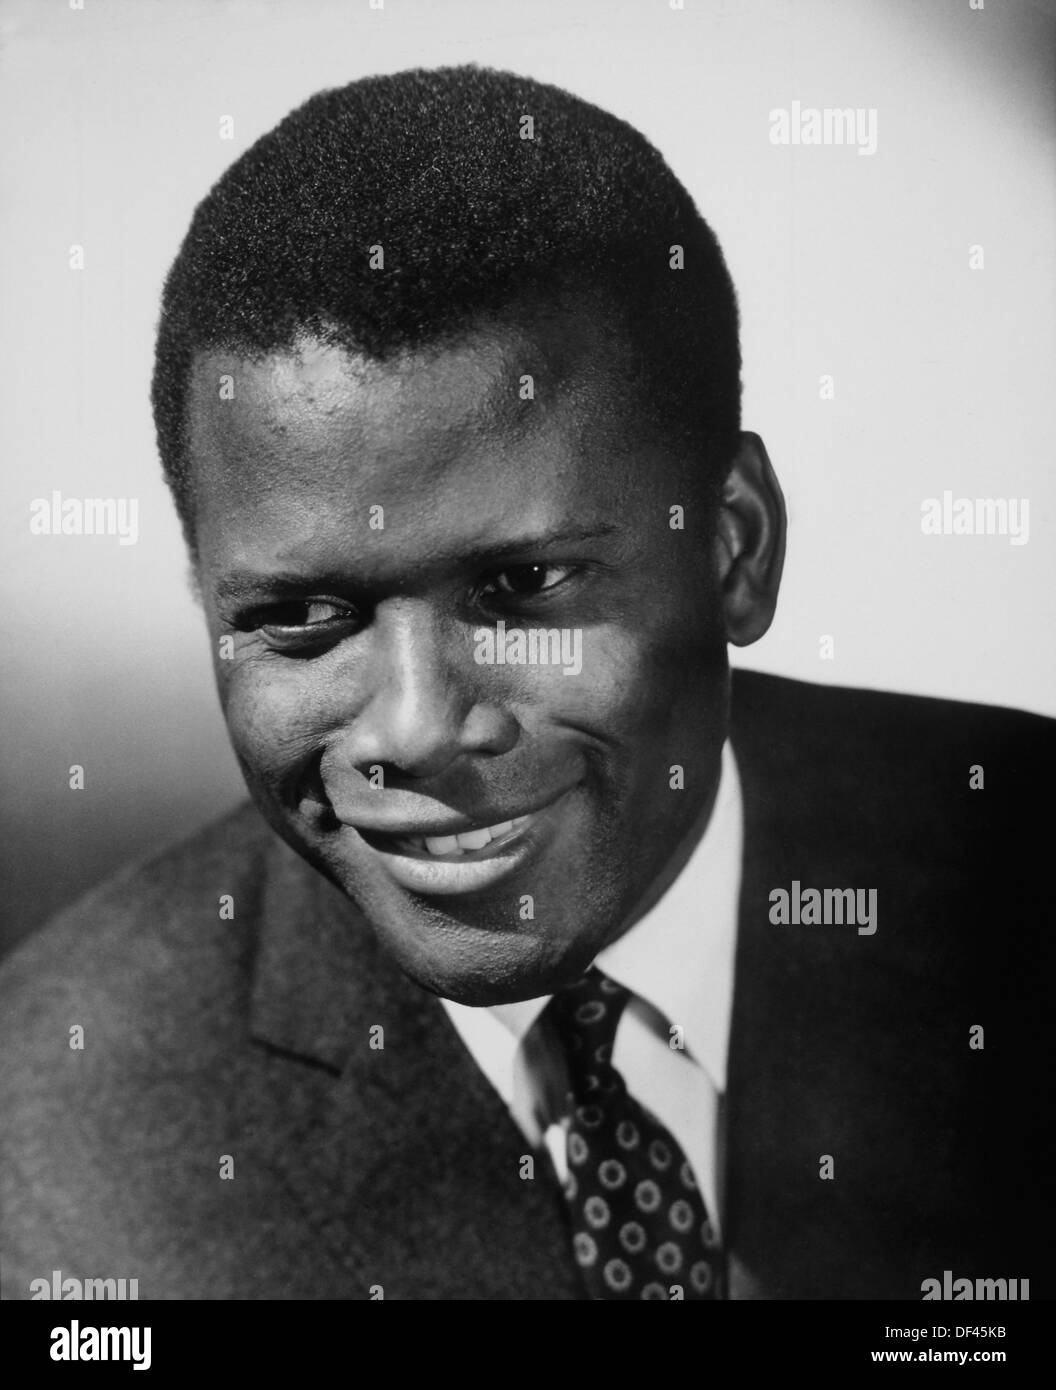 Sidney Poitier, Portrait, On-Set of the Film, 'Guess Who's Coming to Dinner', 1967 - Stock Image